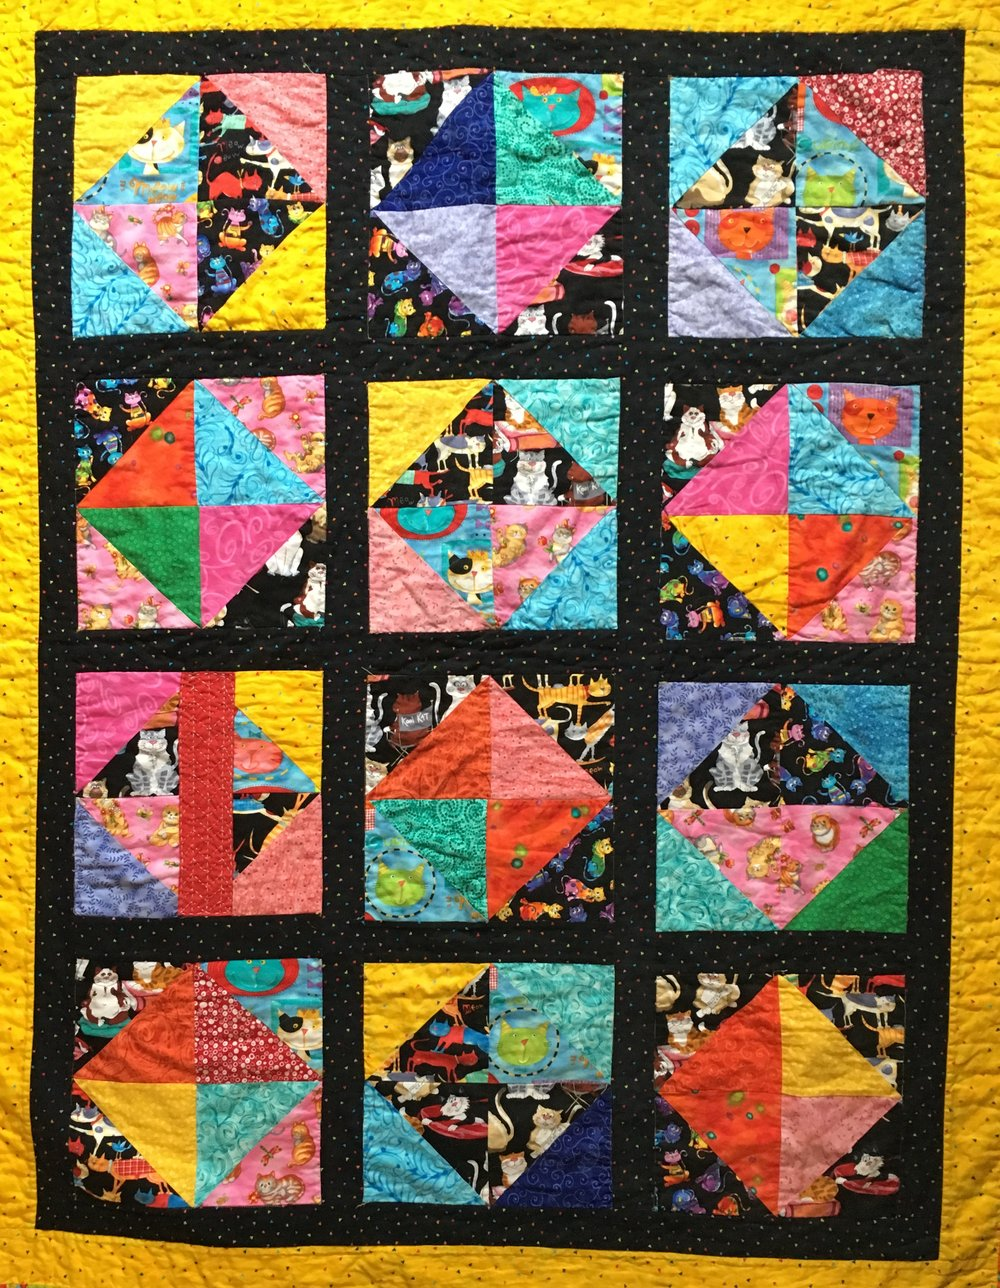 The sashiko mend plays happily with the blocks in this quilt.  (Its in the far left rowd, 3rd block down).